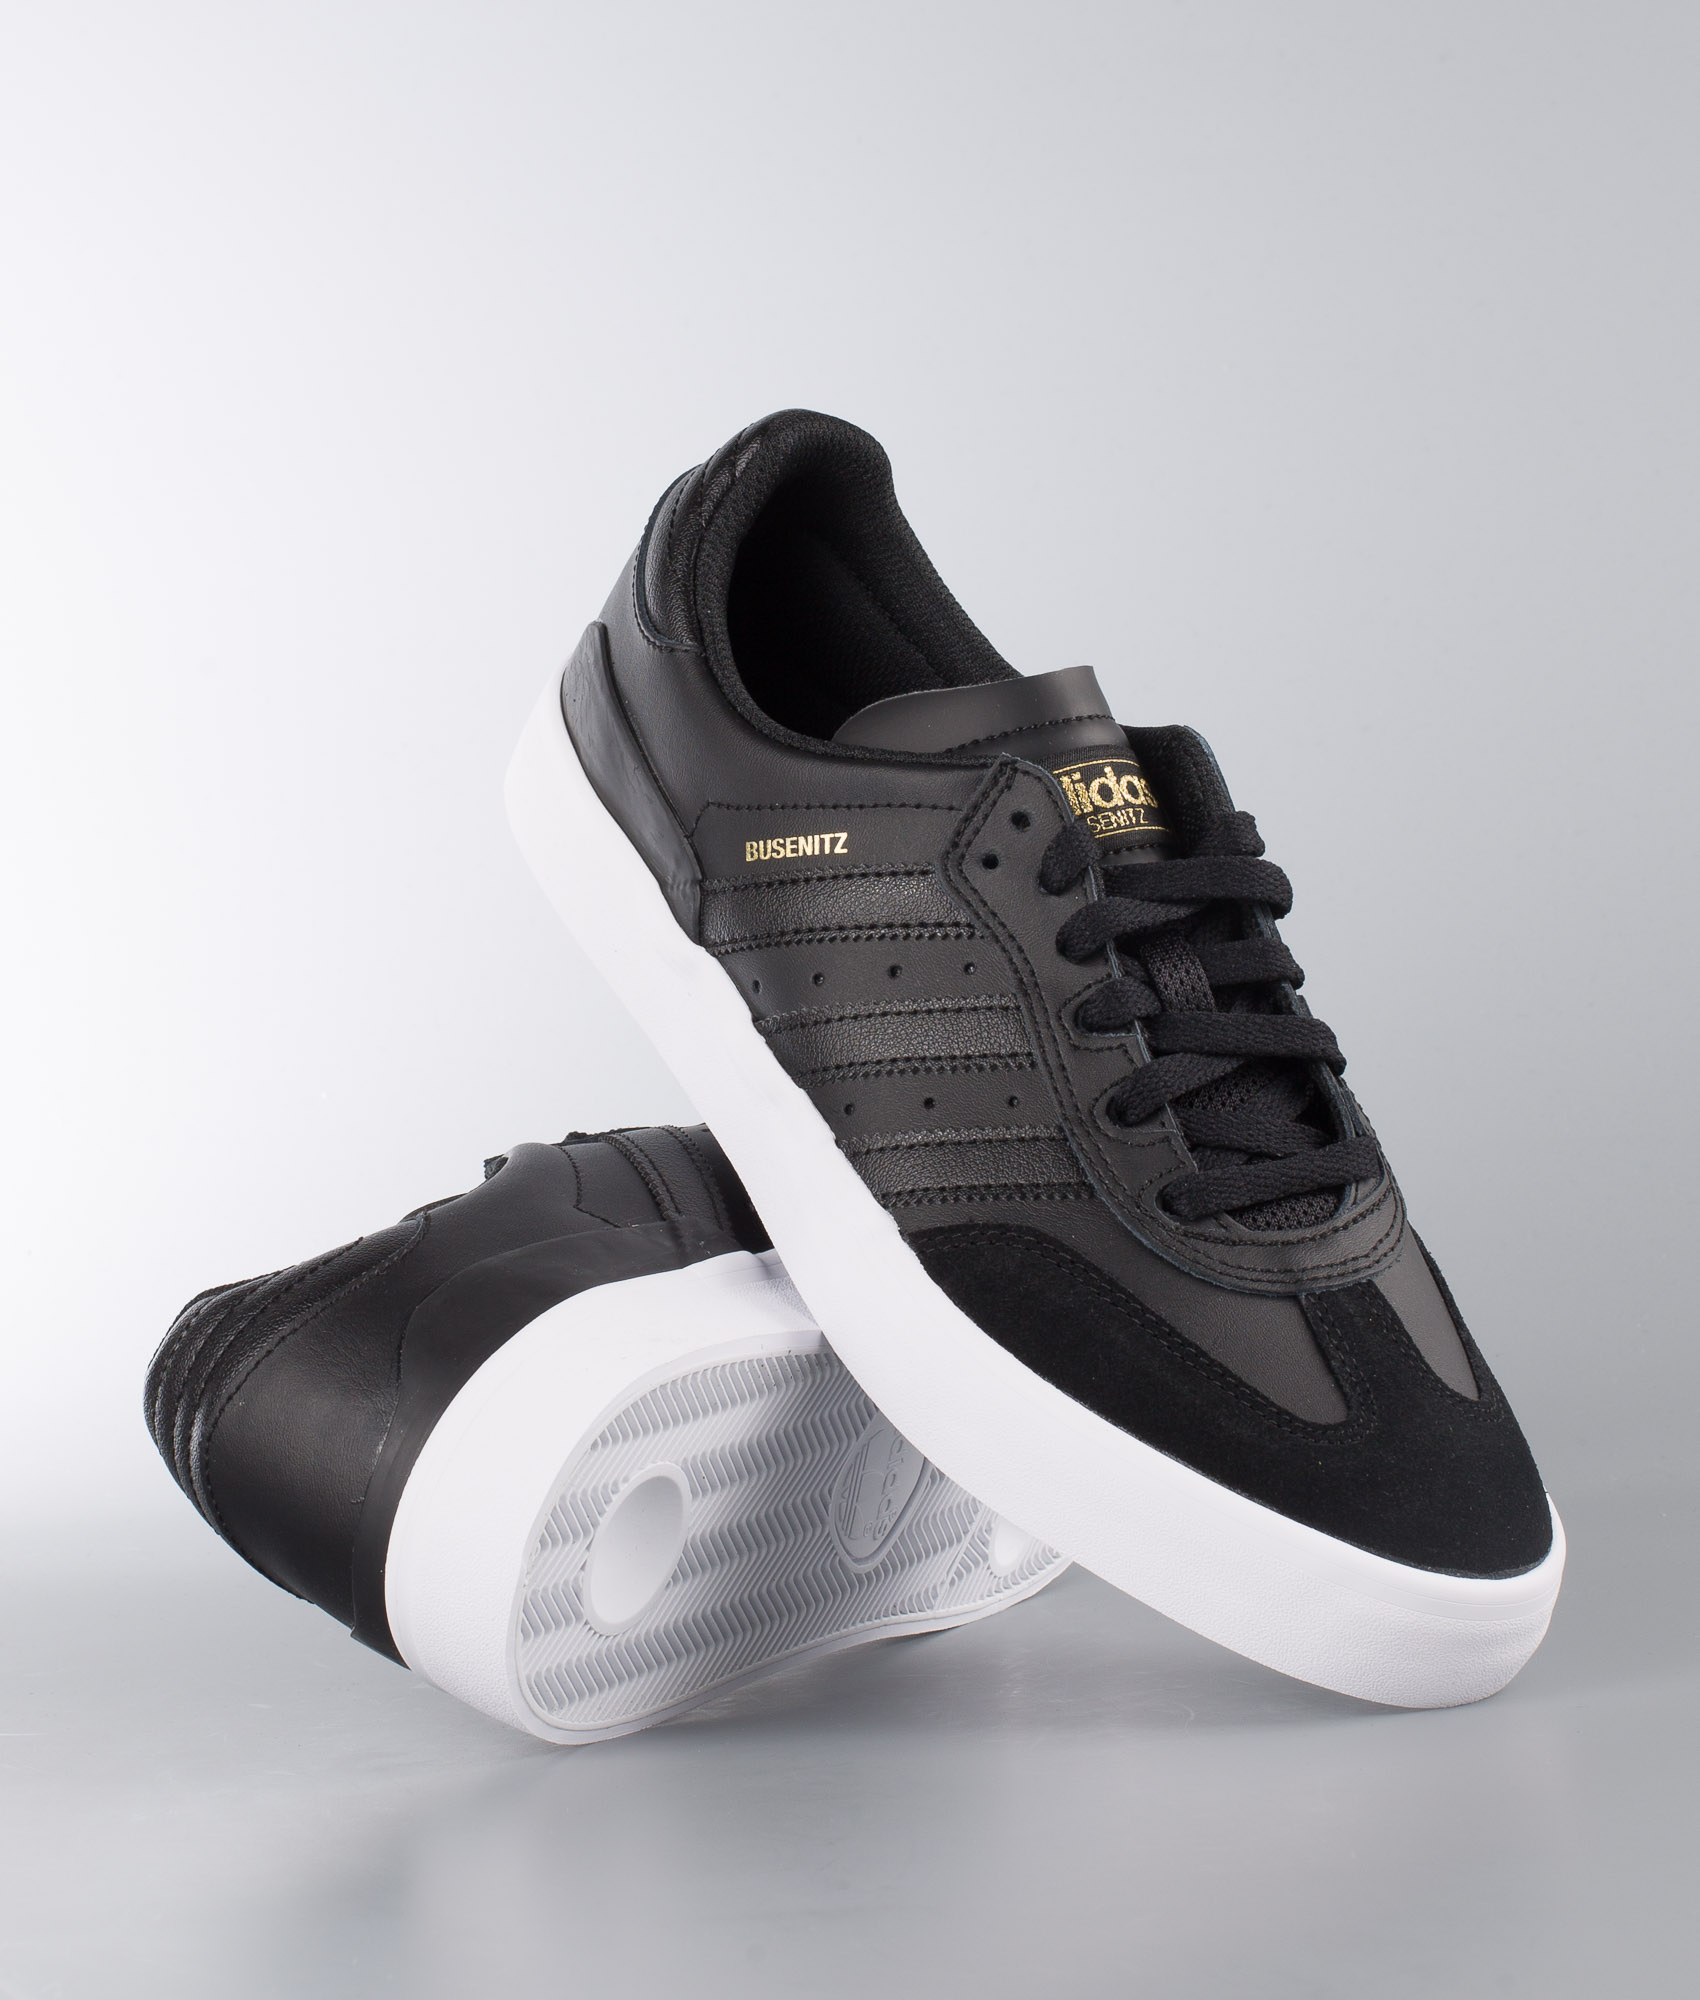 adidas busenitz vulc rx shoes - core black / core black